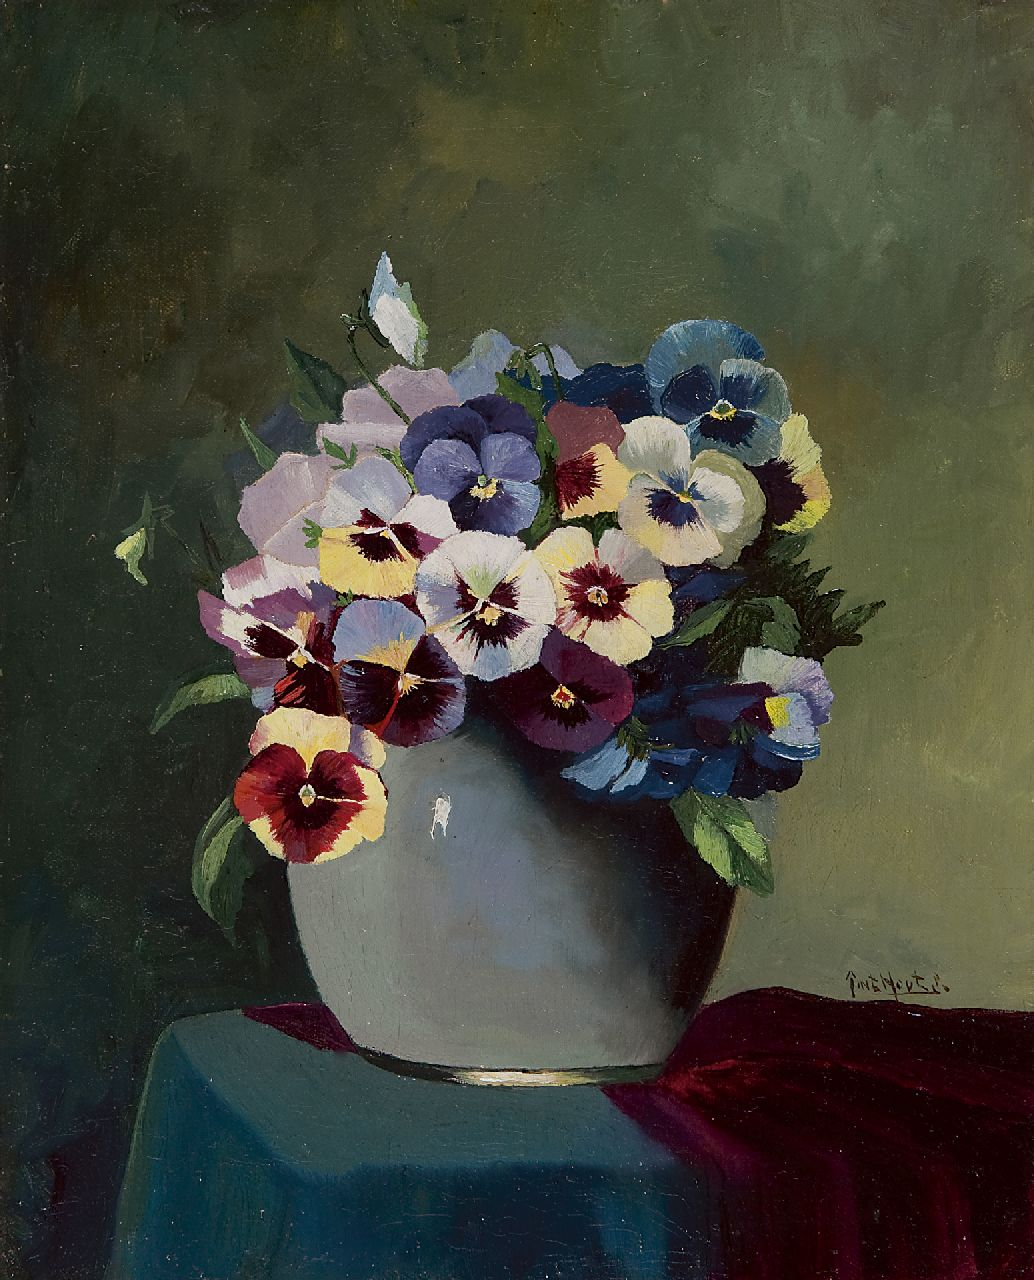 Piet in 't Hout | Violets in a vase, oil on canvas, 30.2 x 24.5 cm, signed l.r.